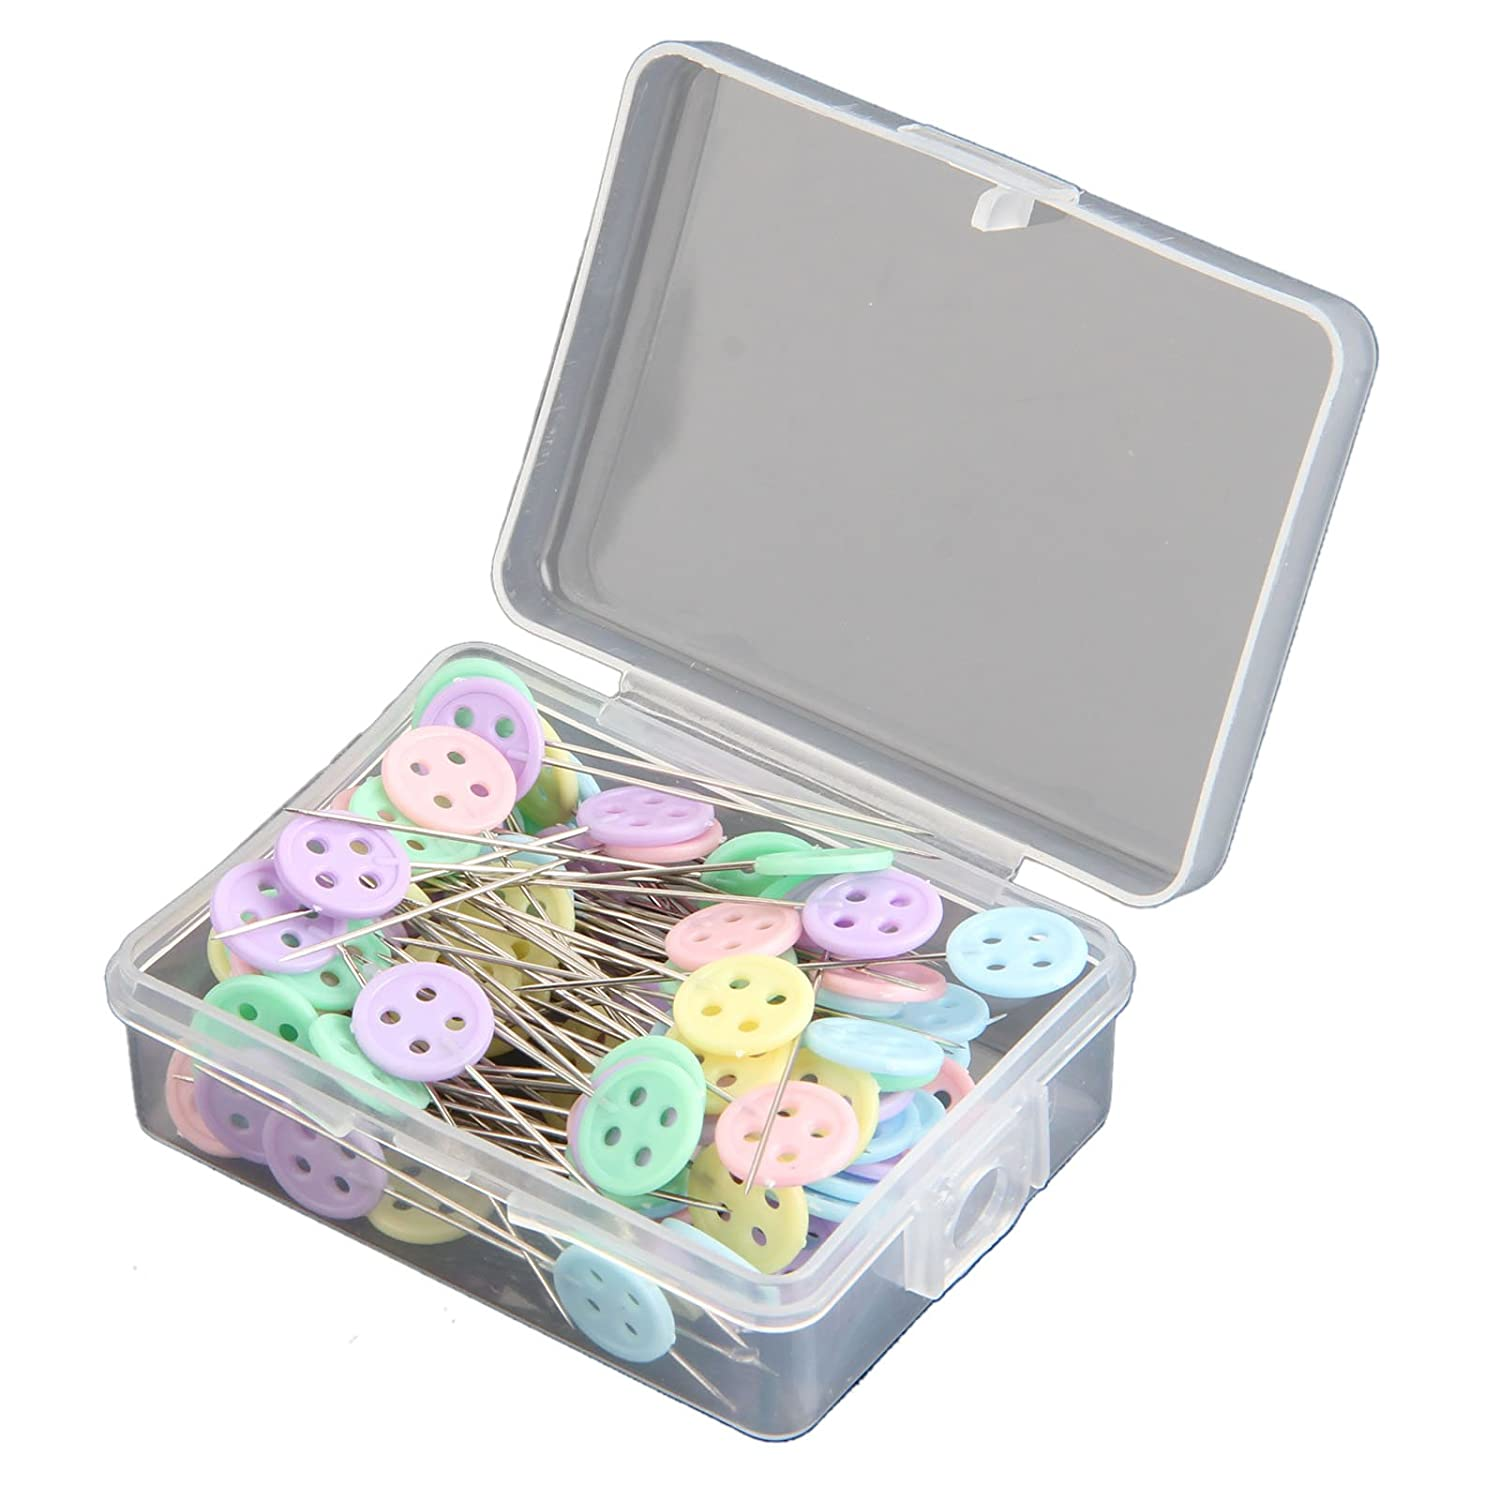 100pcs Mixed Colors Sewing Patchwork Pins Flower Head Pins Sewing DIY Tool Needle Arts-Bow tie MGoodoo